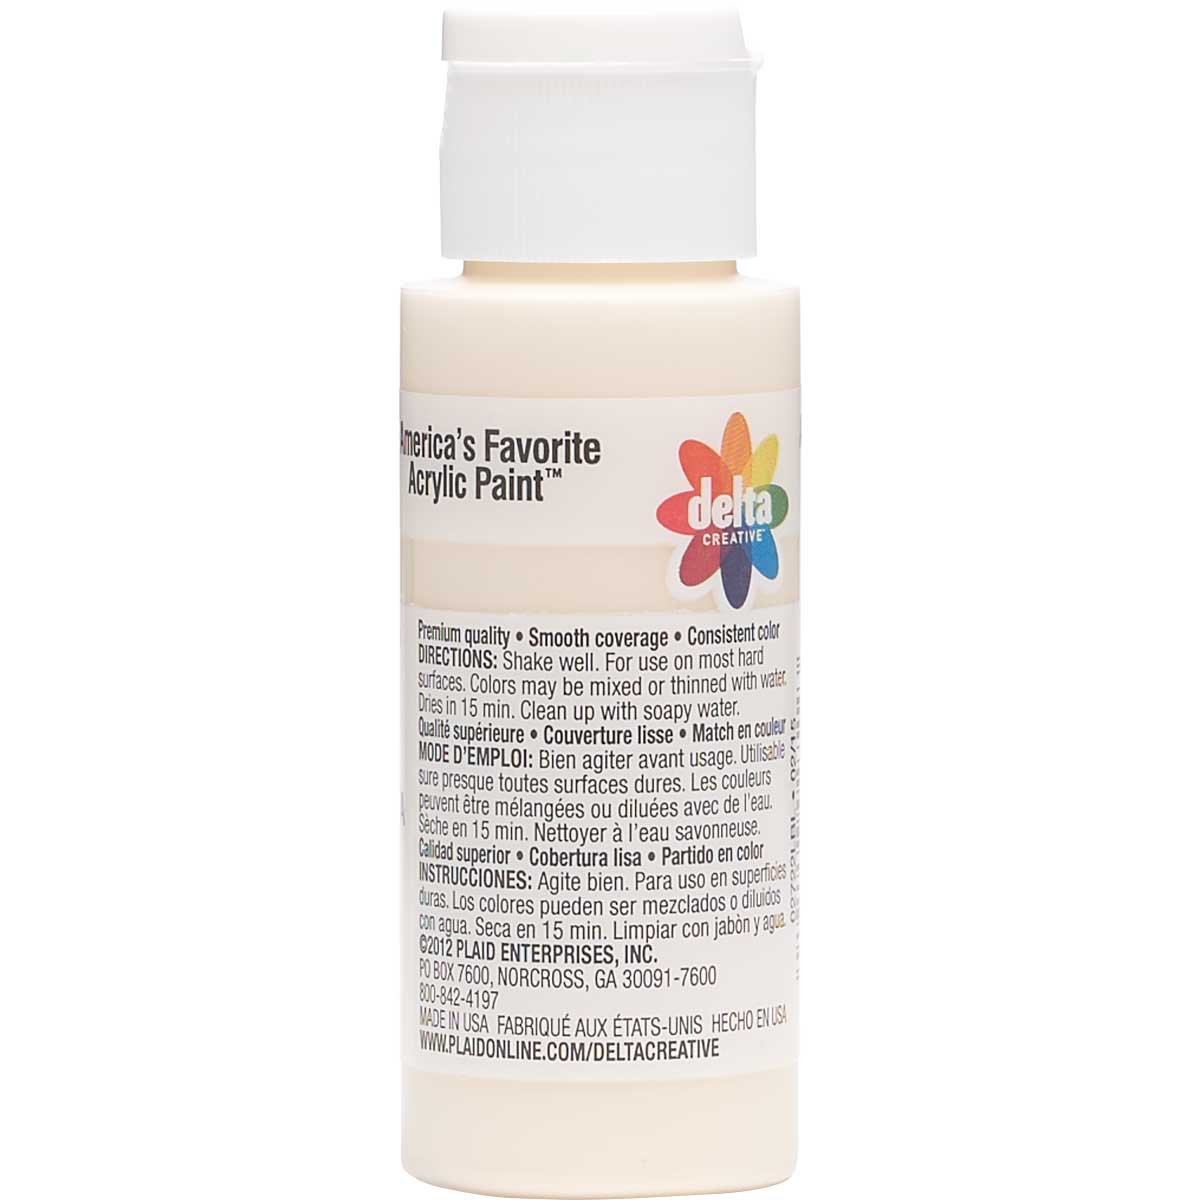 Delta Ceramcoat ® Acrylic Paint - Peaches-N-Cream, 2 oz. - 02722